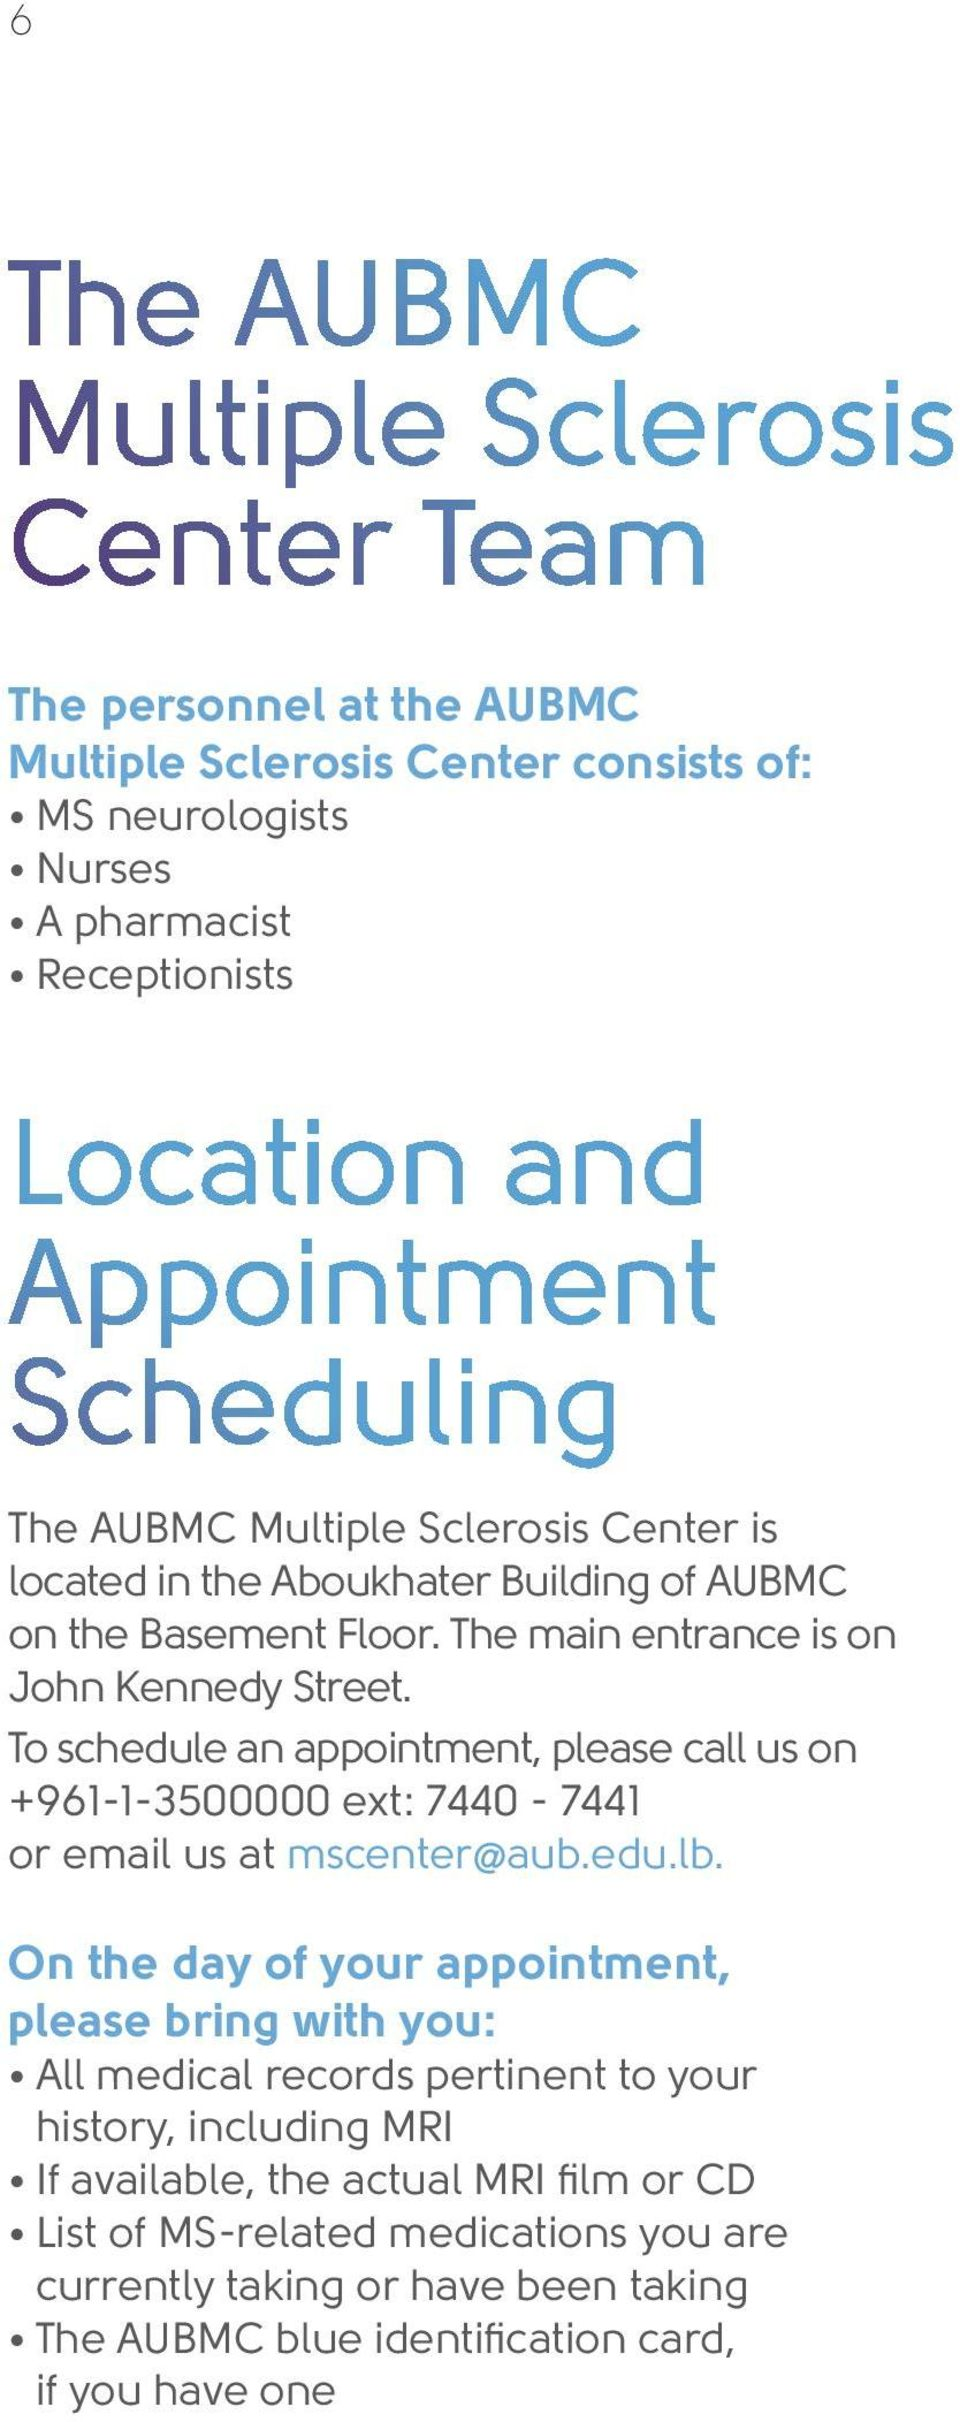 AUBMC Multiple Sclerosis Center - PDF